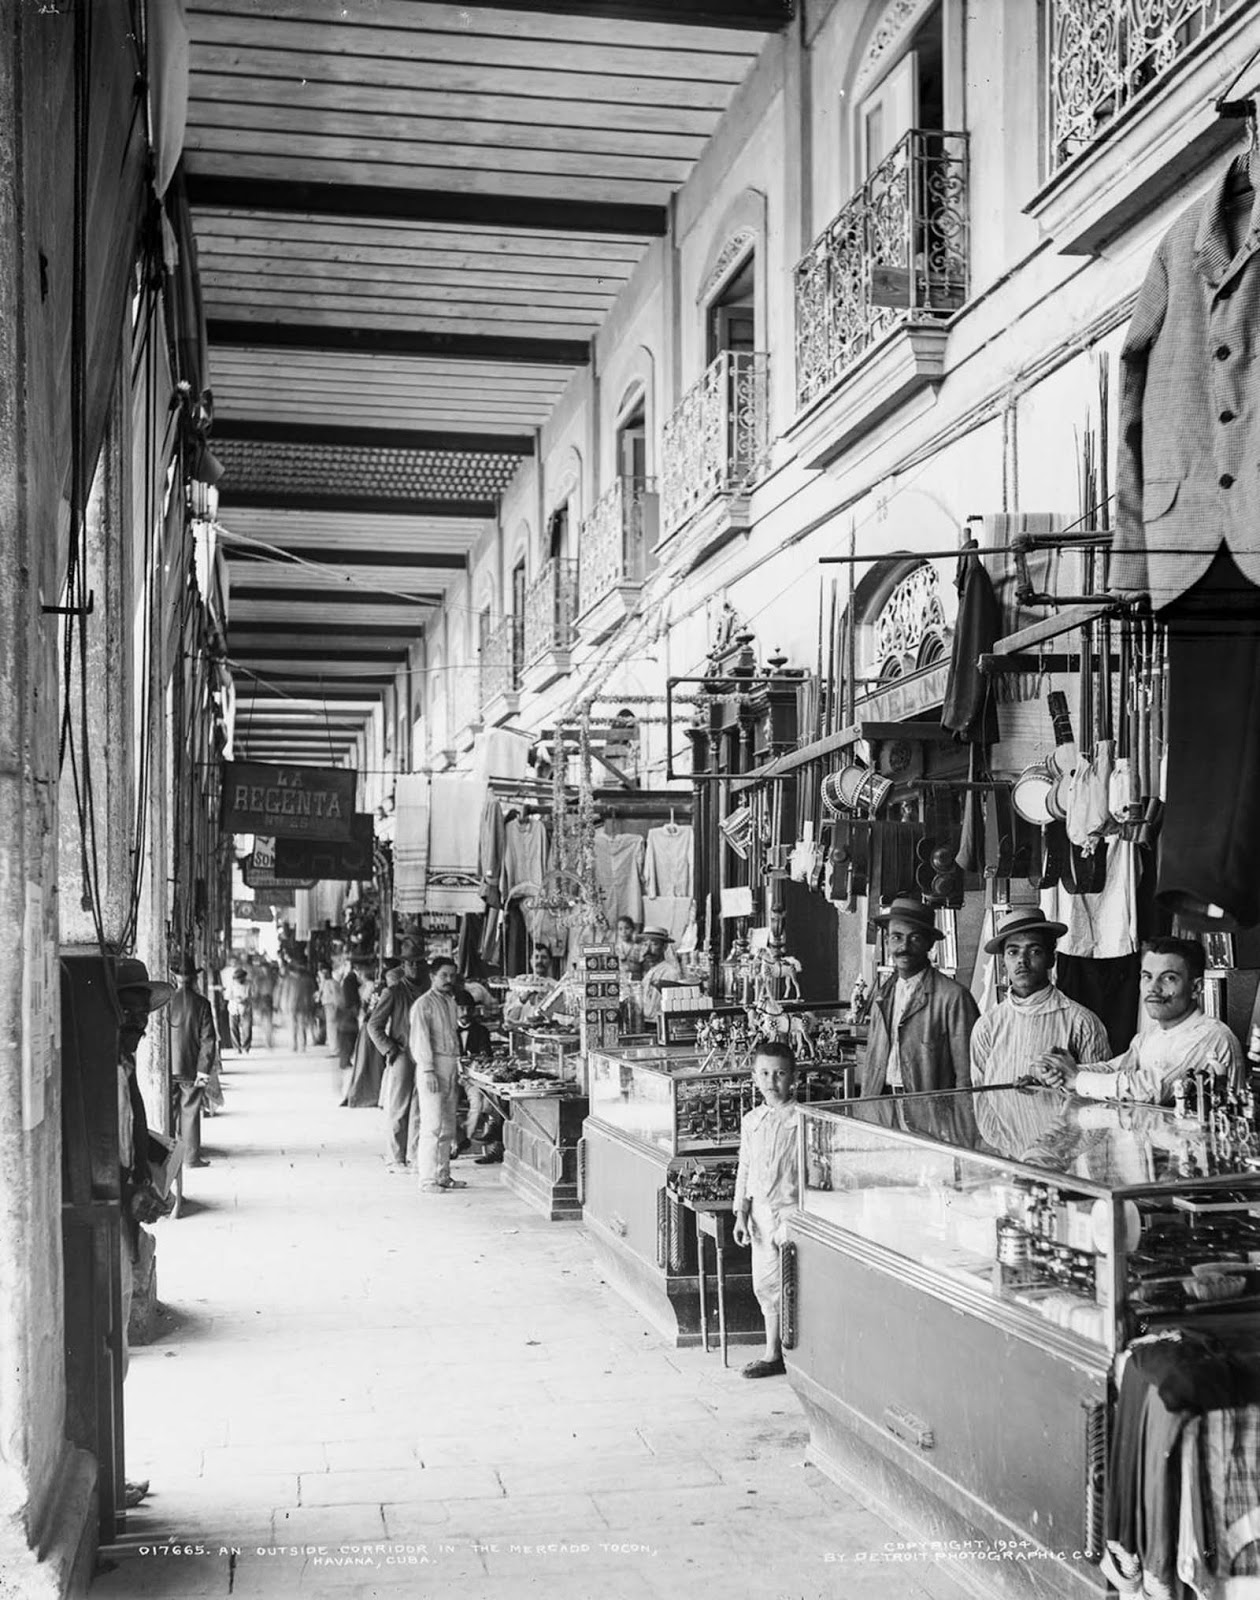 Vendors' stalls in the Mercado Tocon. 1904.